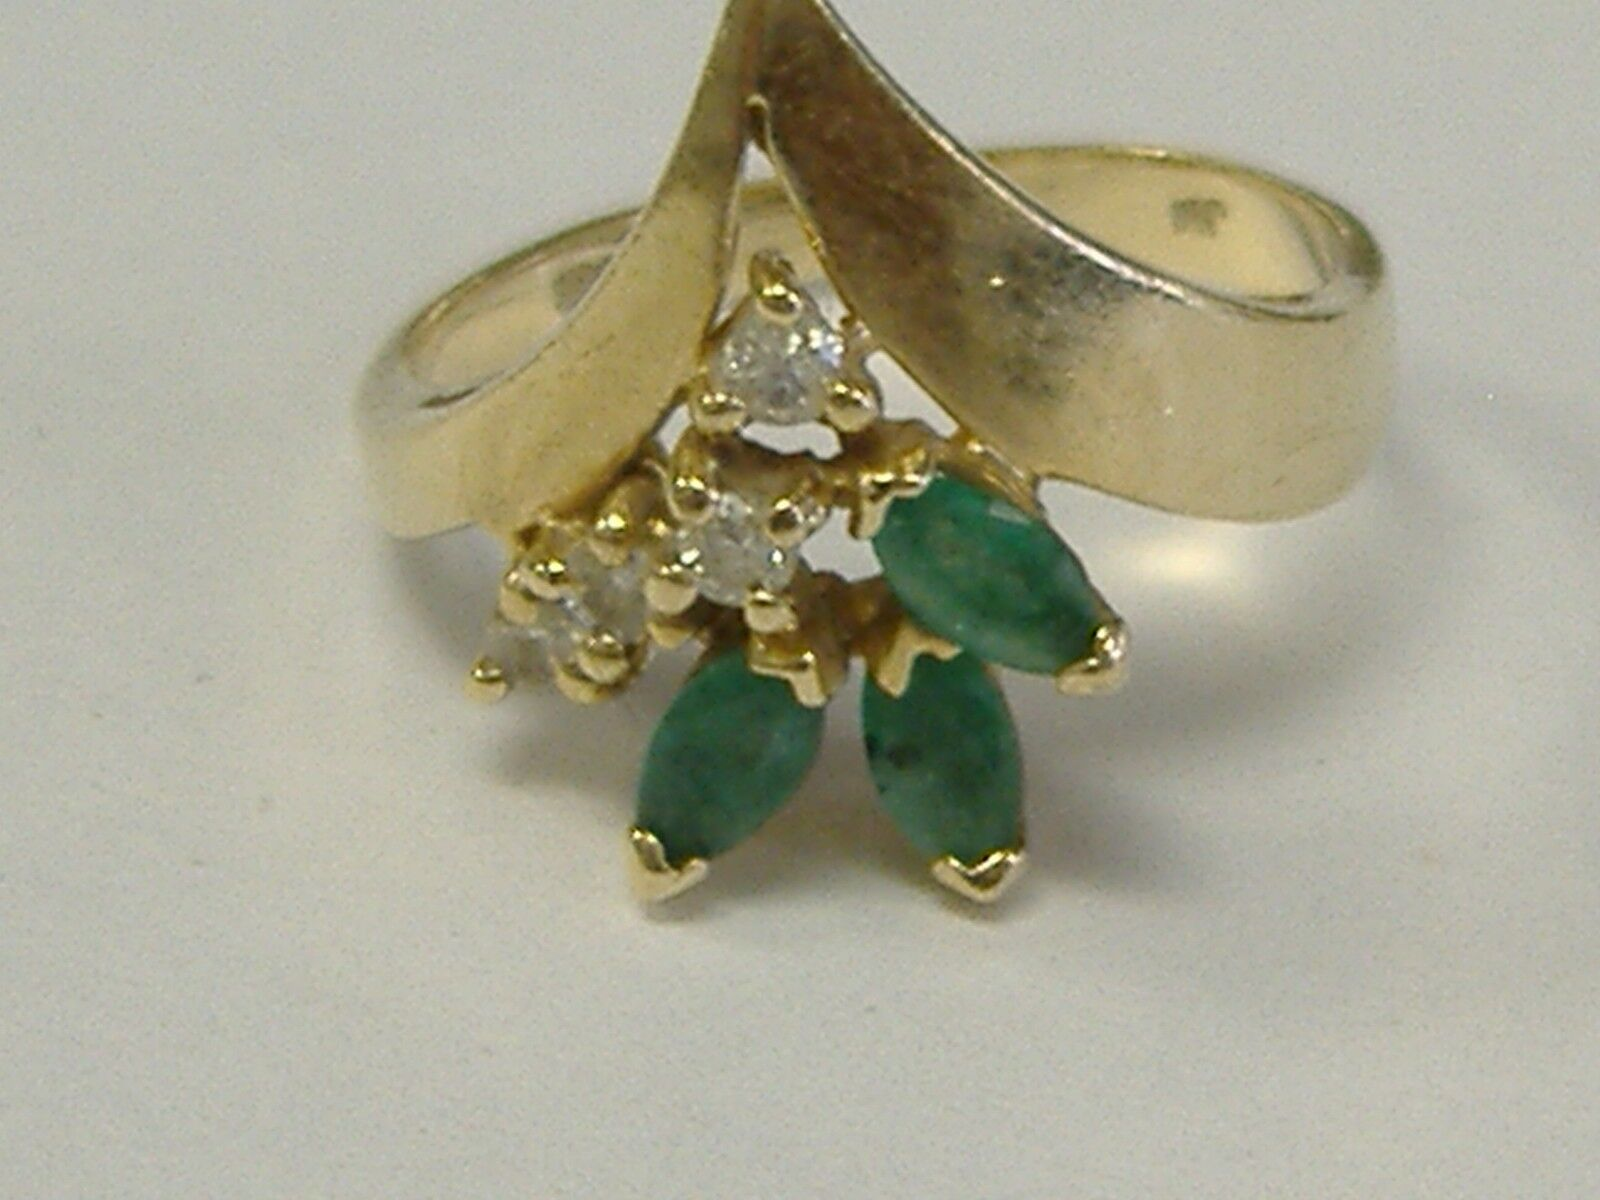 VINTAGE SOLID 14K  gold NATURAL EMERALD AND DIAMONDS RING SIZE 5